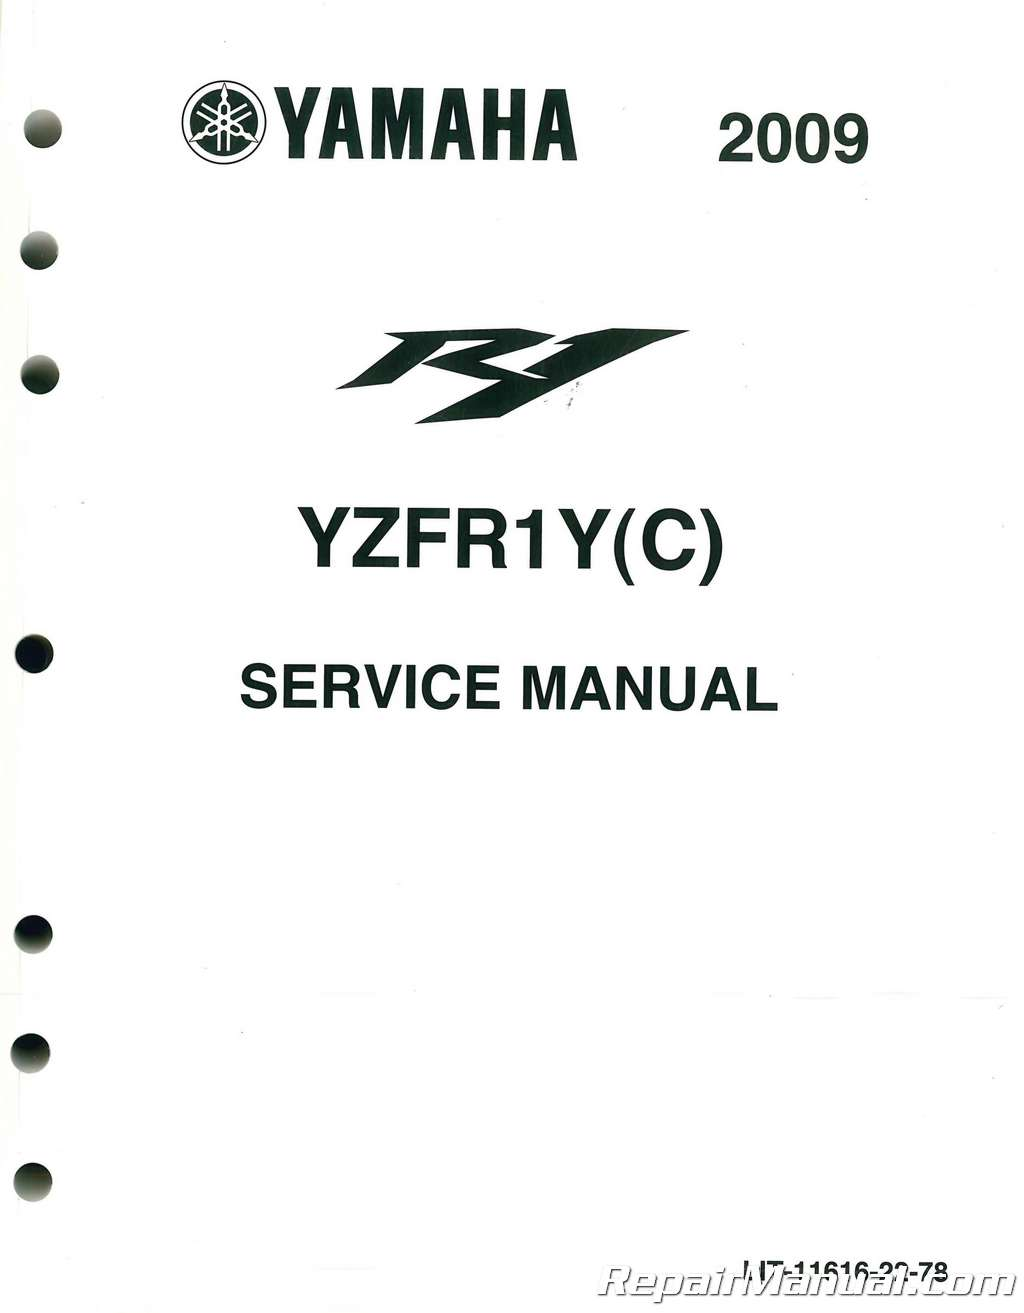 Yamaha Yzfr1 Motorcycle Service Manual